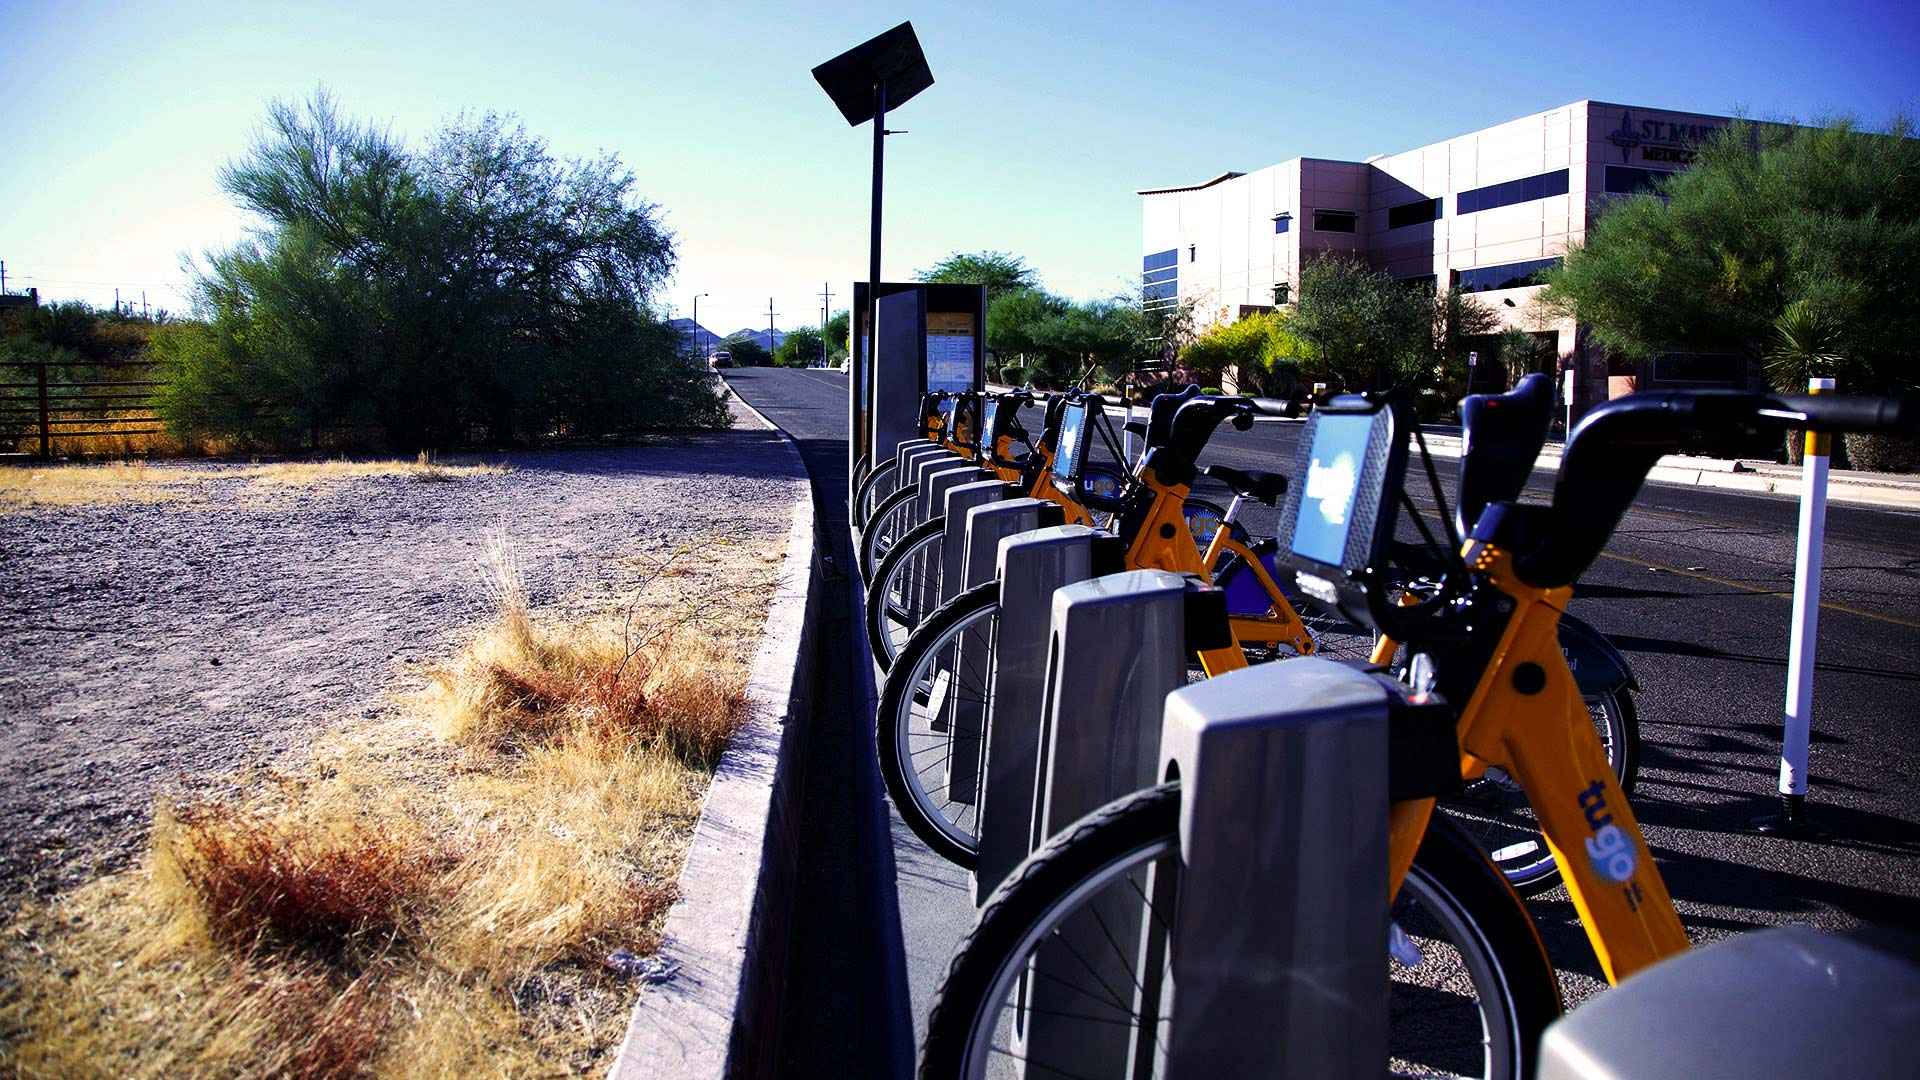 Bicycles for the Tugo city bike-share program near Tumamoc Hill on Tucson's west side, 2017.